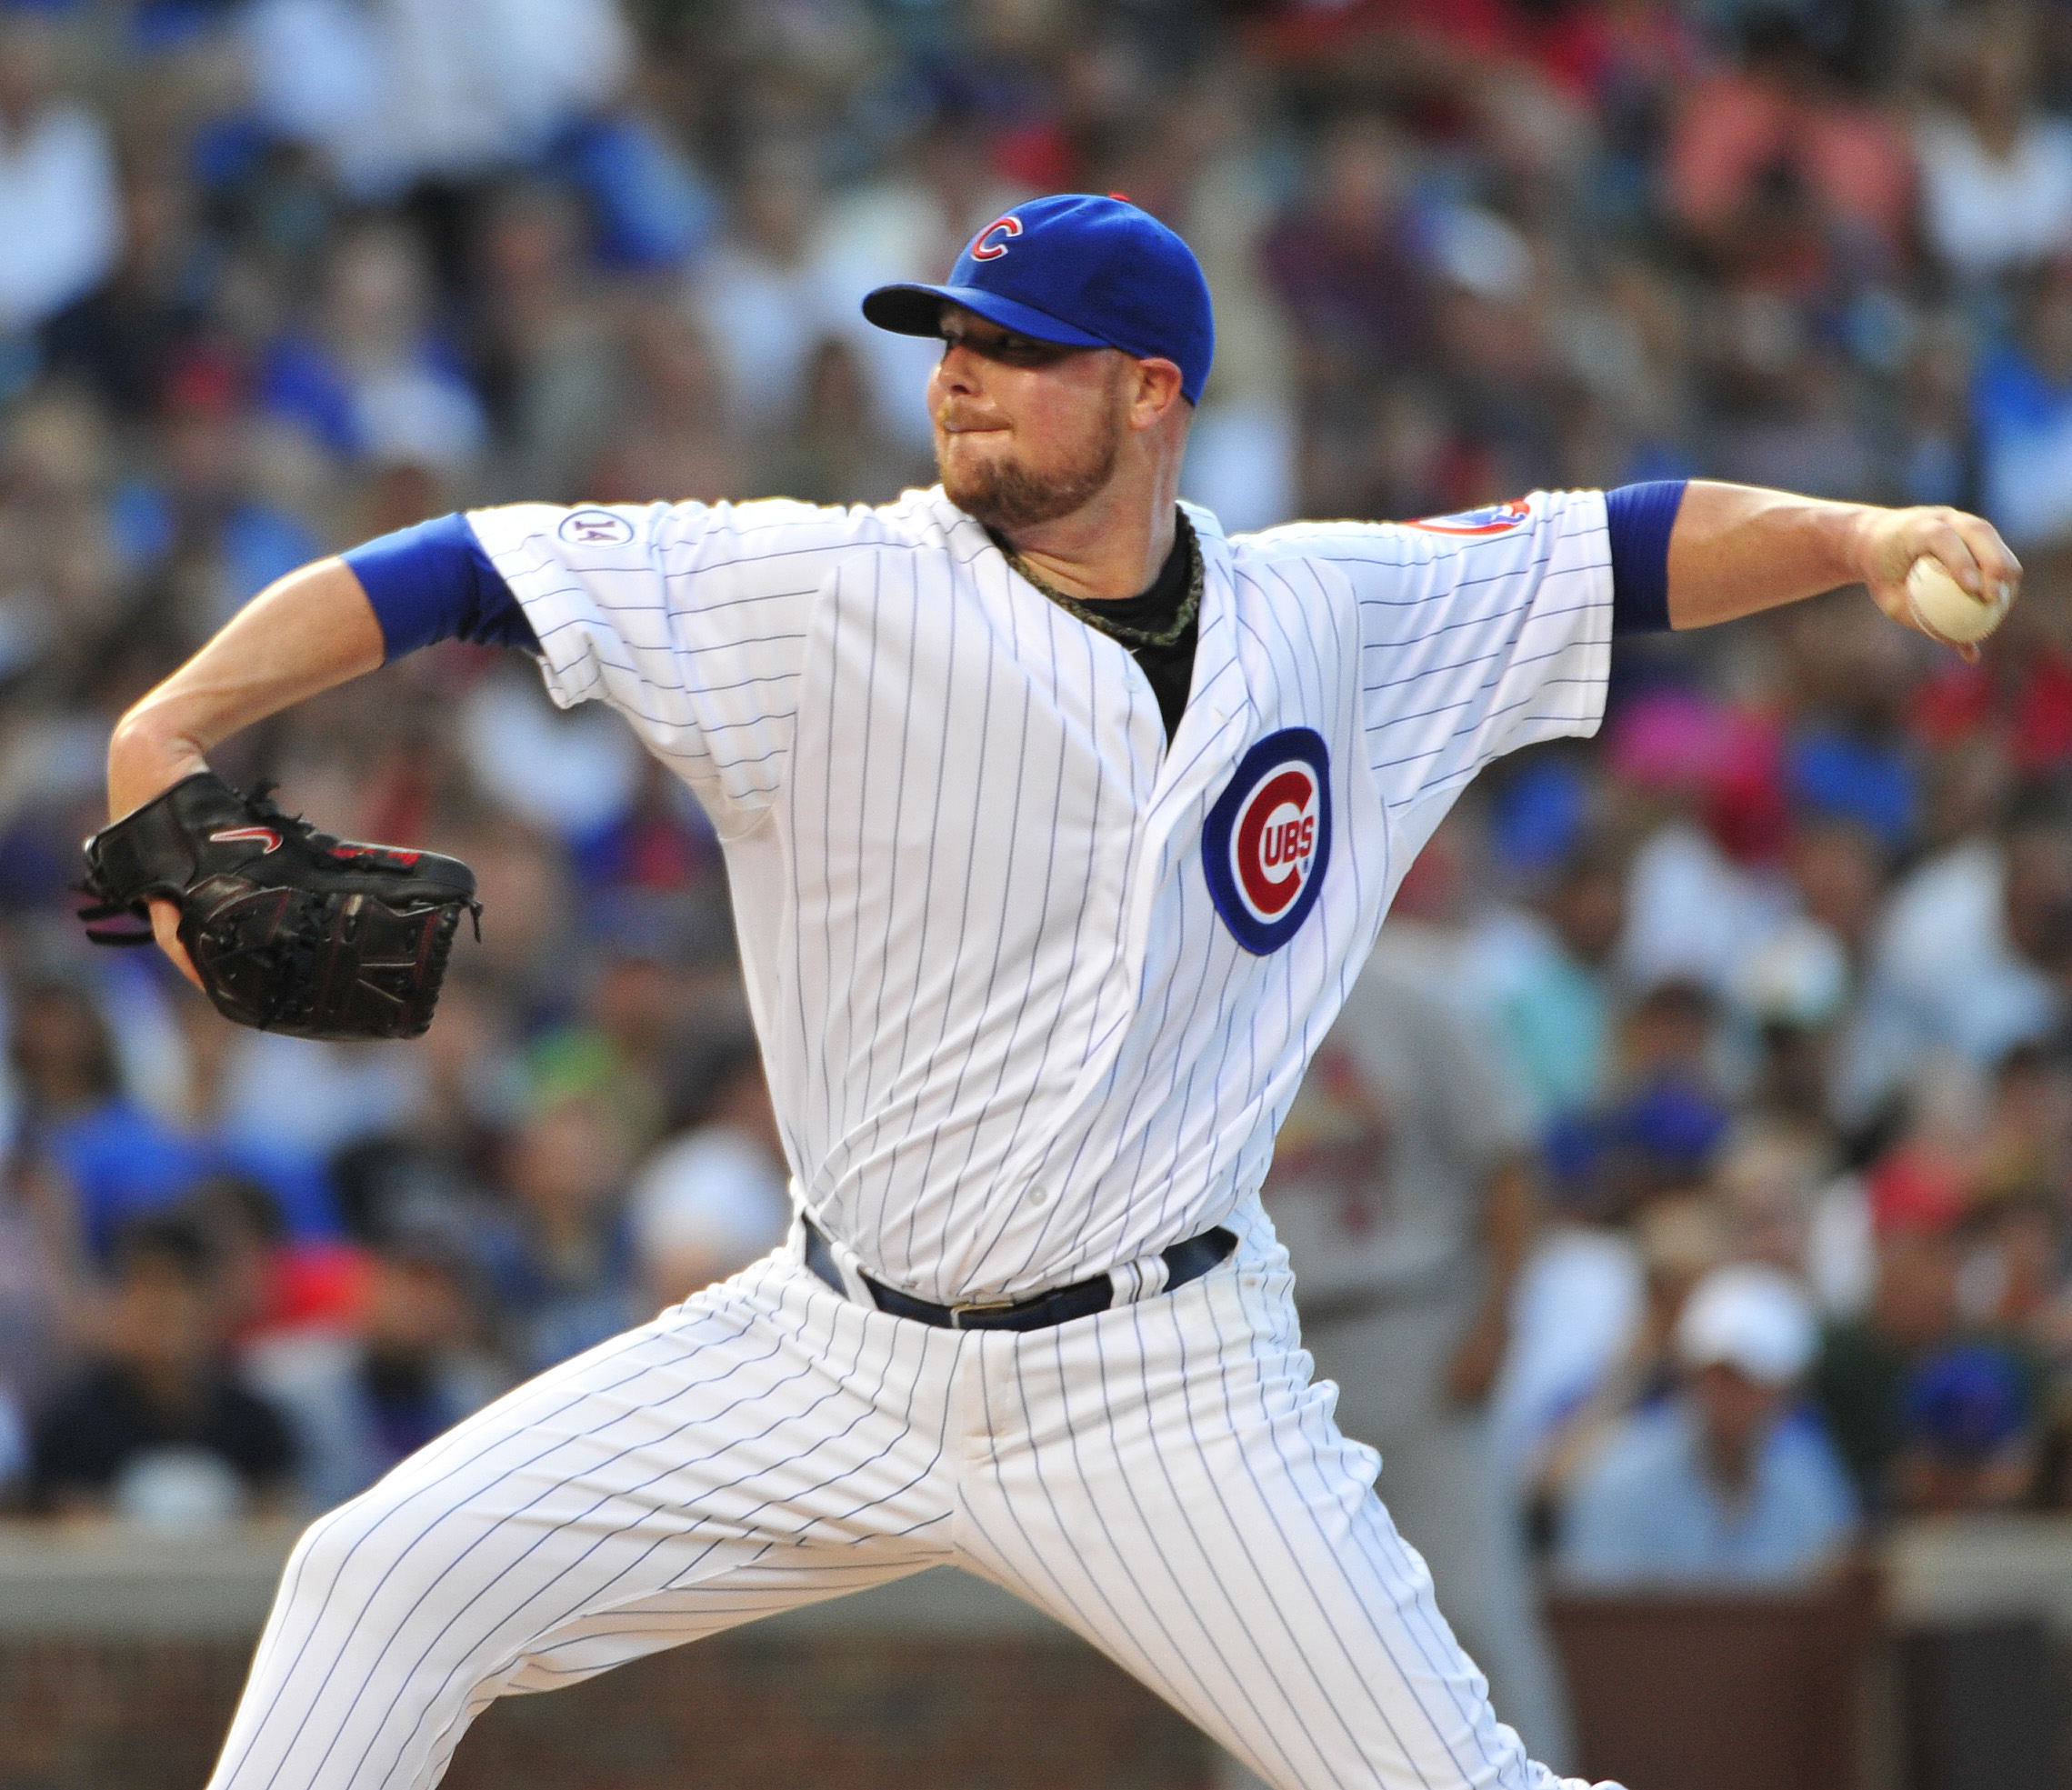 Chicago Cubs starting pitcher Jon Lester throws against the St. Louis Cardinals during the first inning of a baseball game, Monday, July  6, 2015, in Chicago. (AP Photo/David Banks)